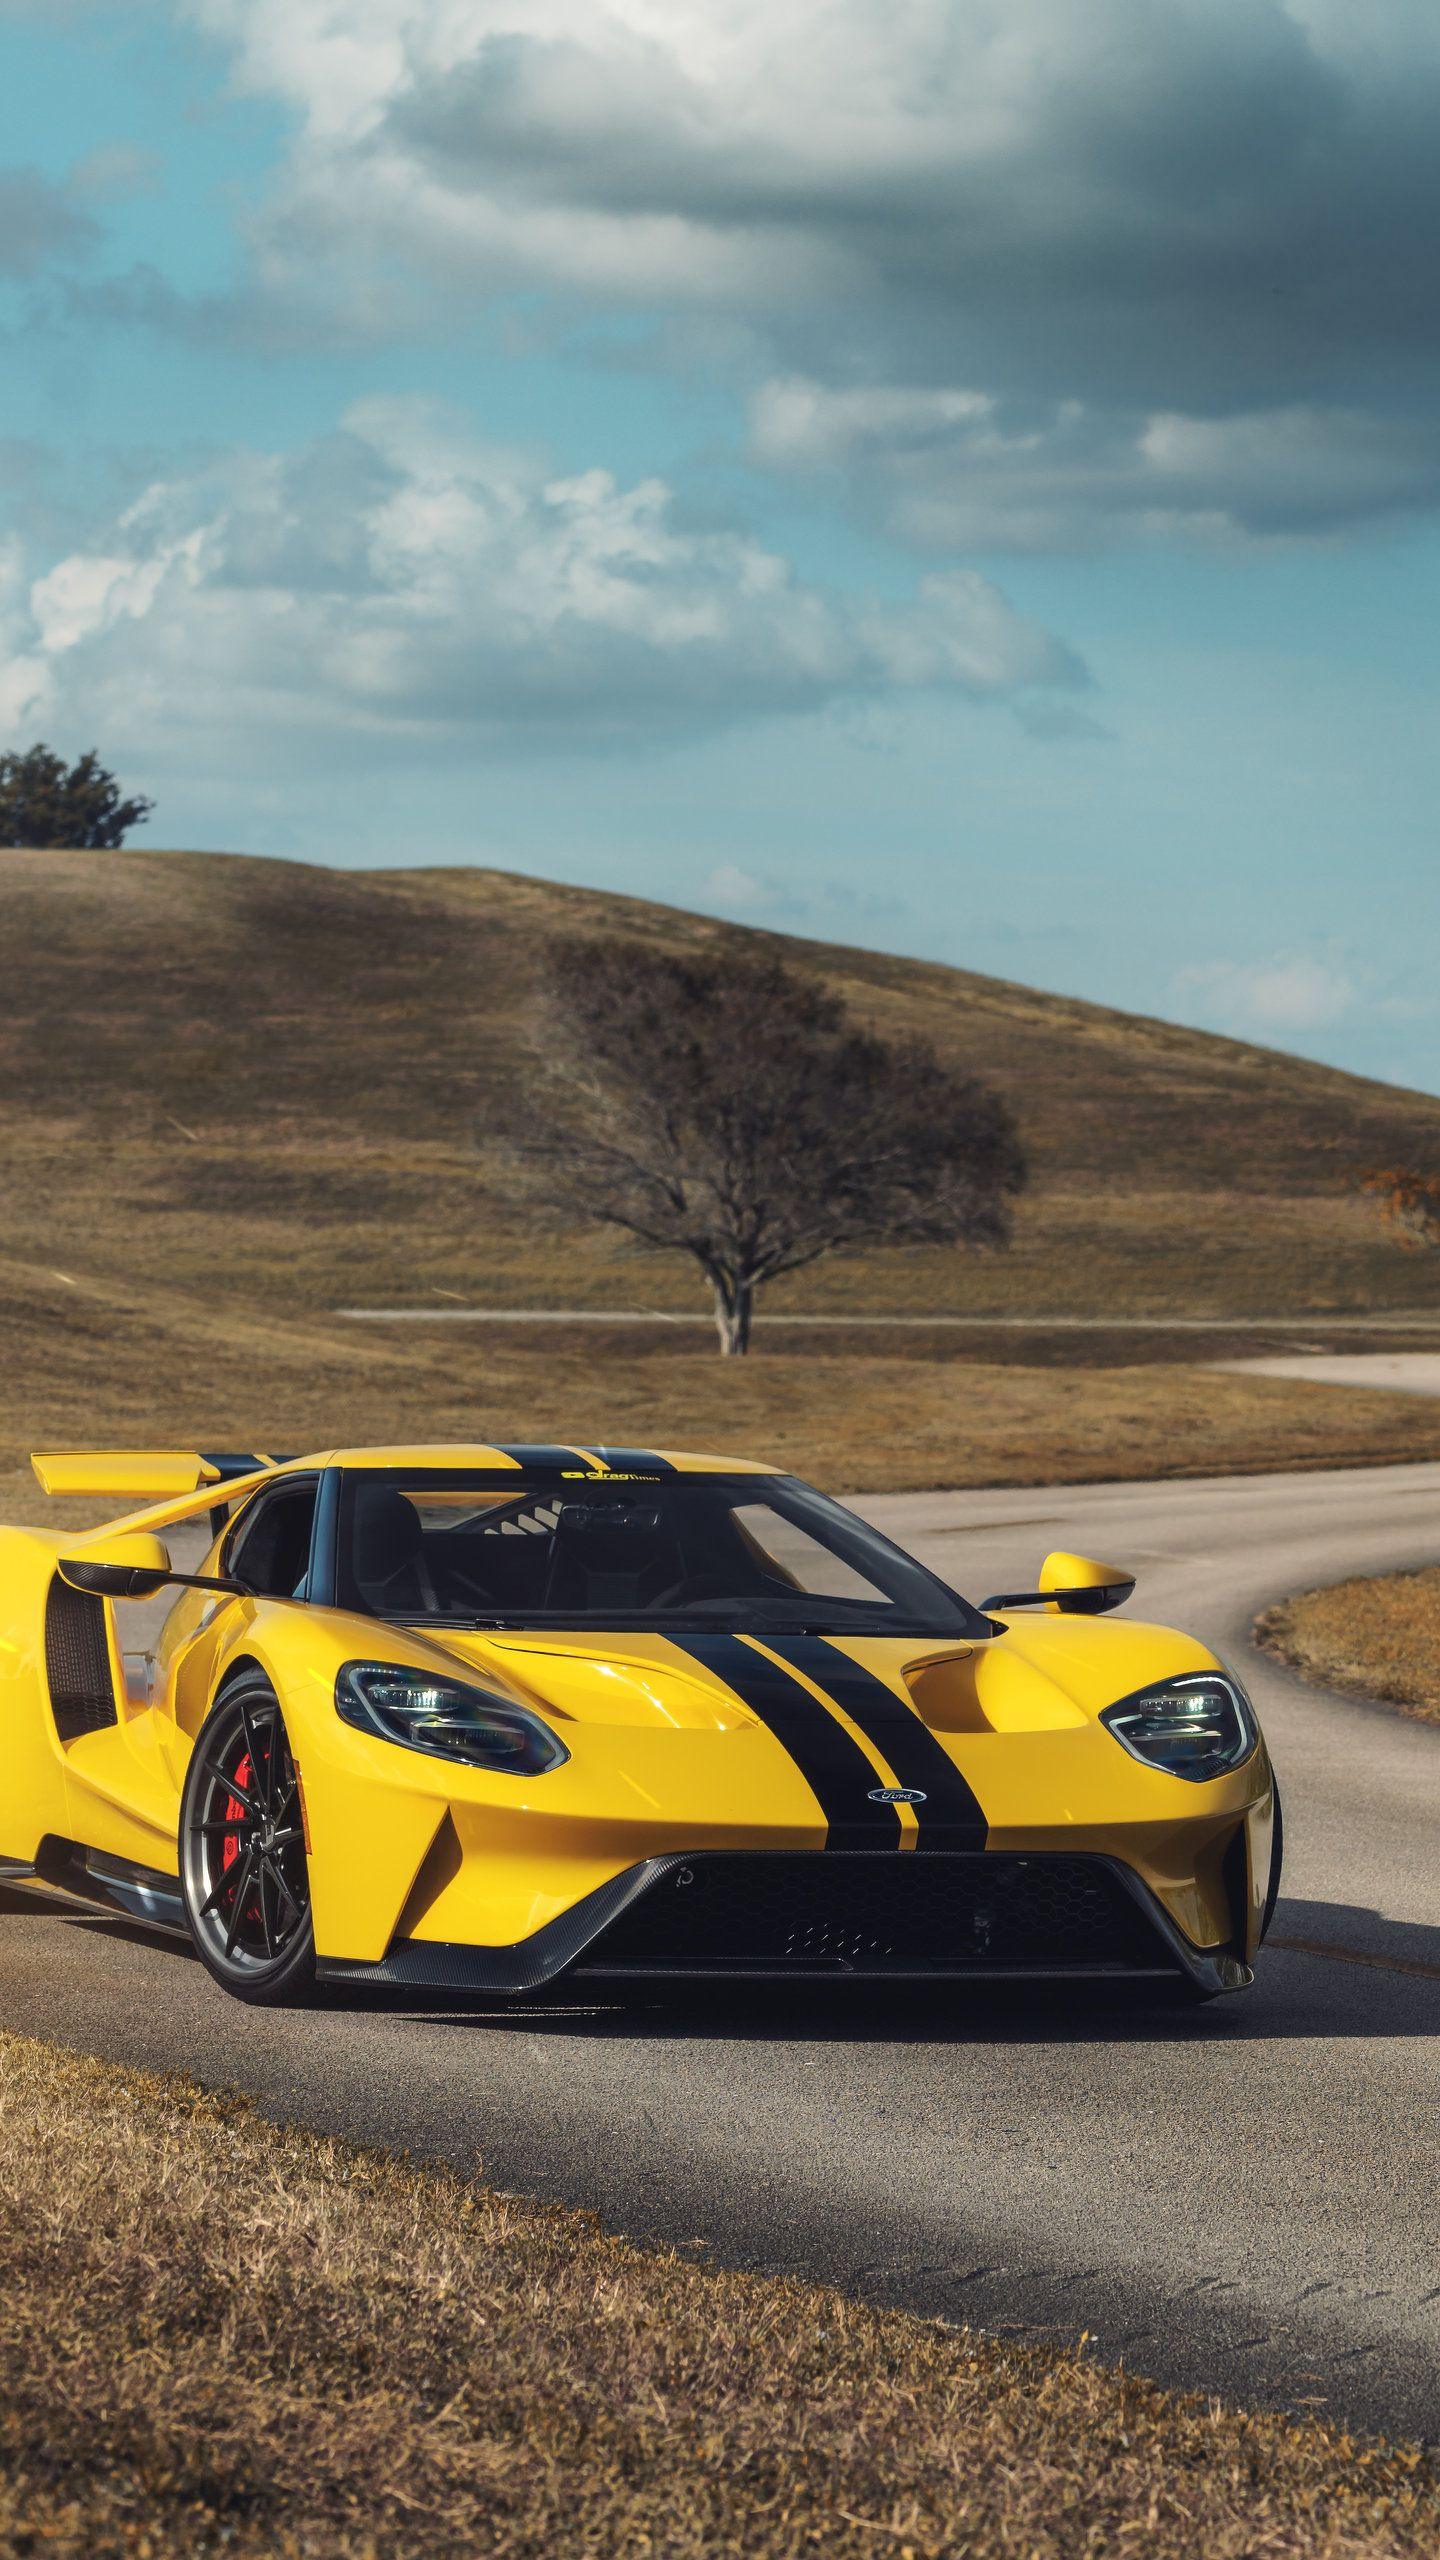 Yellow Ford GT 1 8K, HD Cars Wallpapers Photos and